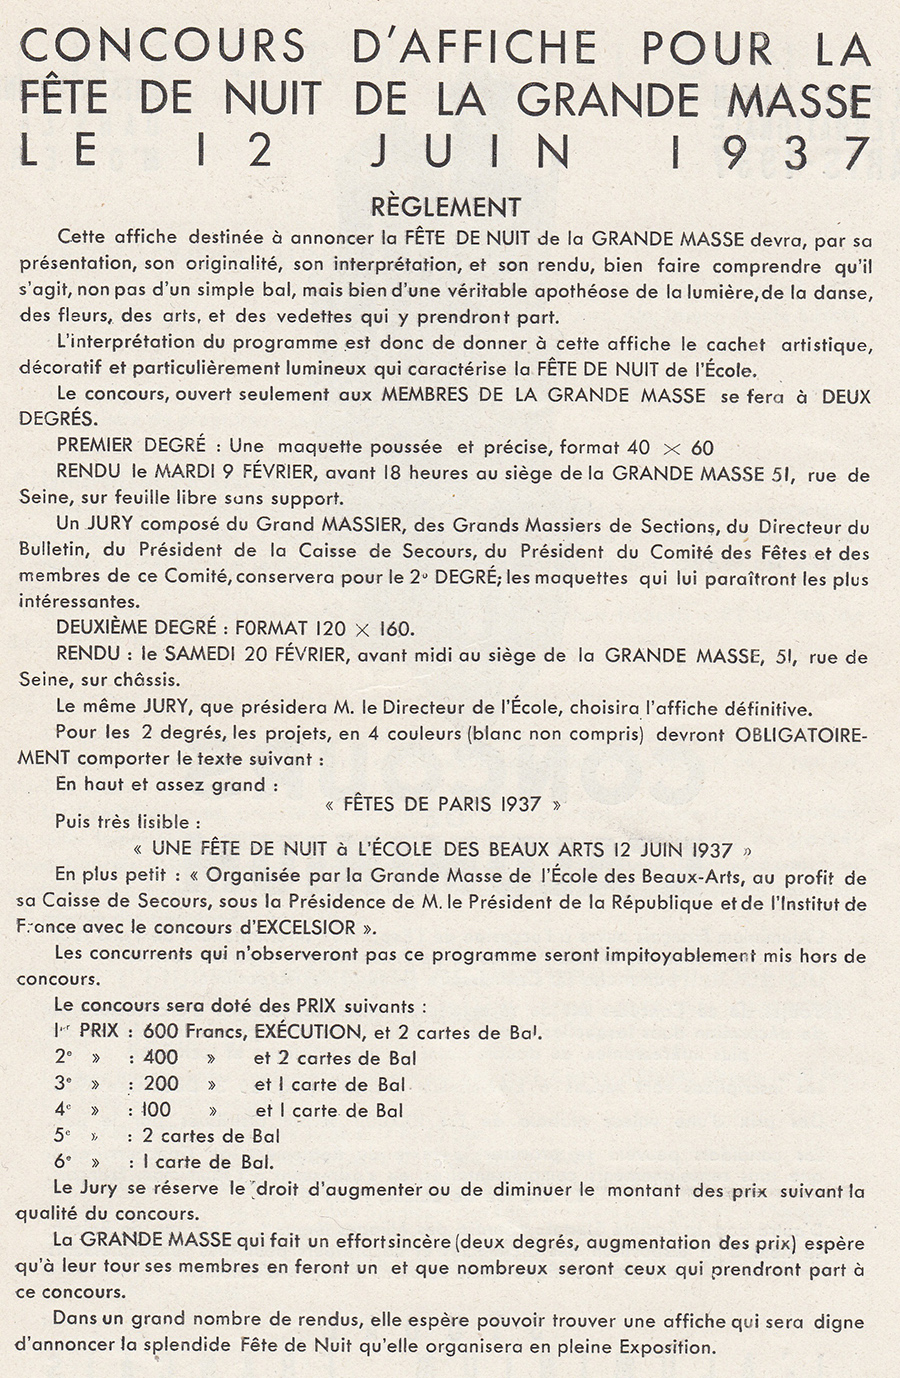 193701_Bulletin-GMBA_Reglement-concours-affiches.jpg